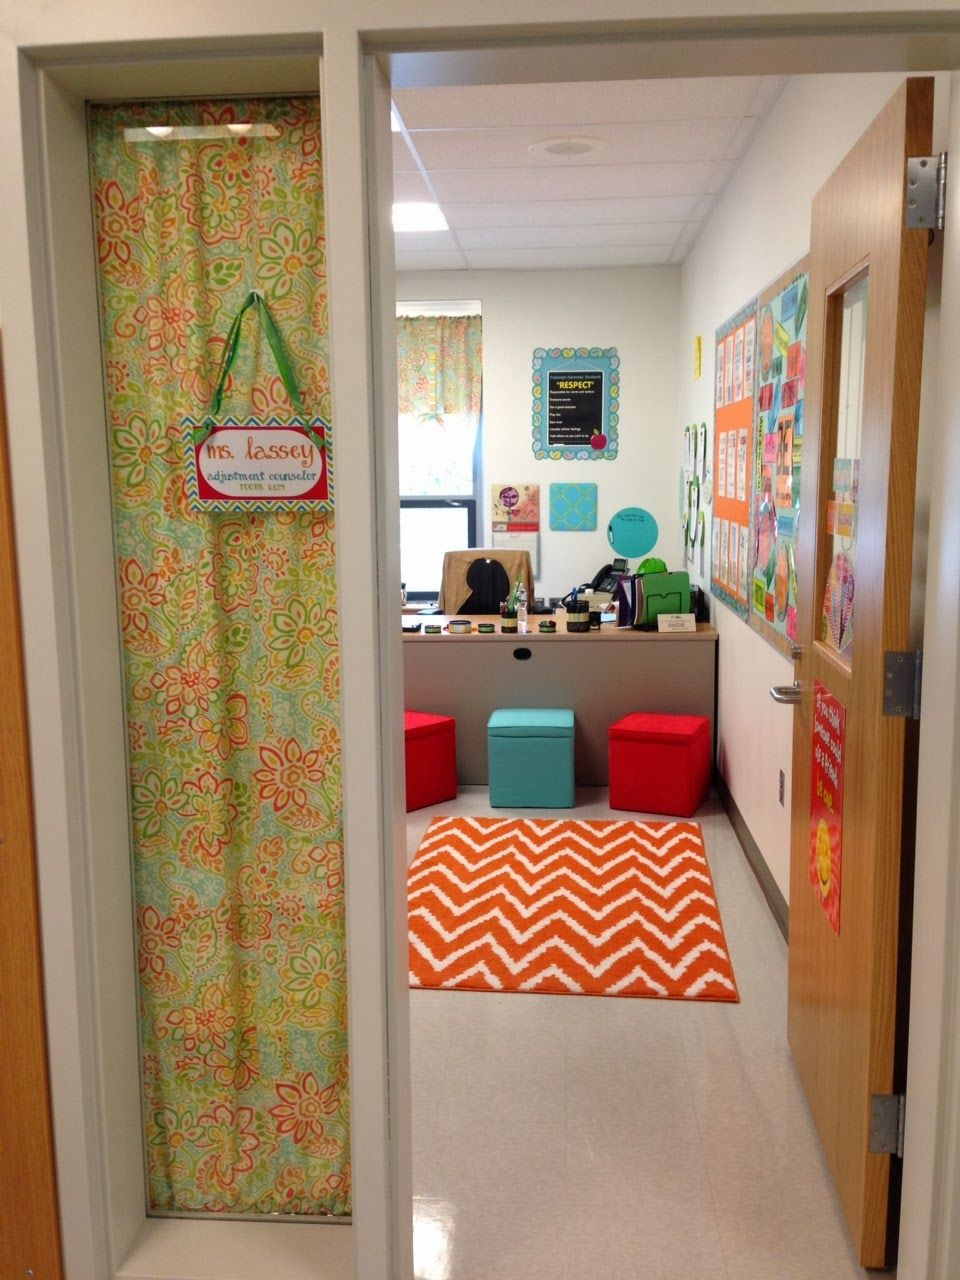 Counseling Room Design Ideas Part - 23: School Counseling Office Ideas From Creative Elementary School Counselor